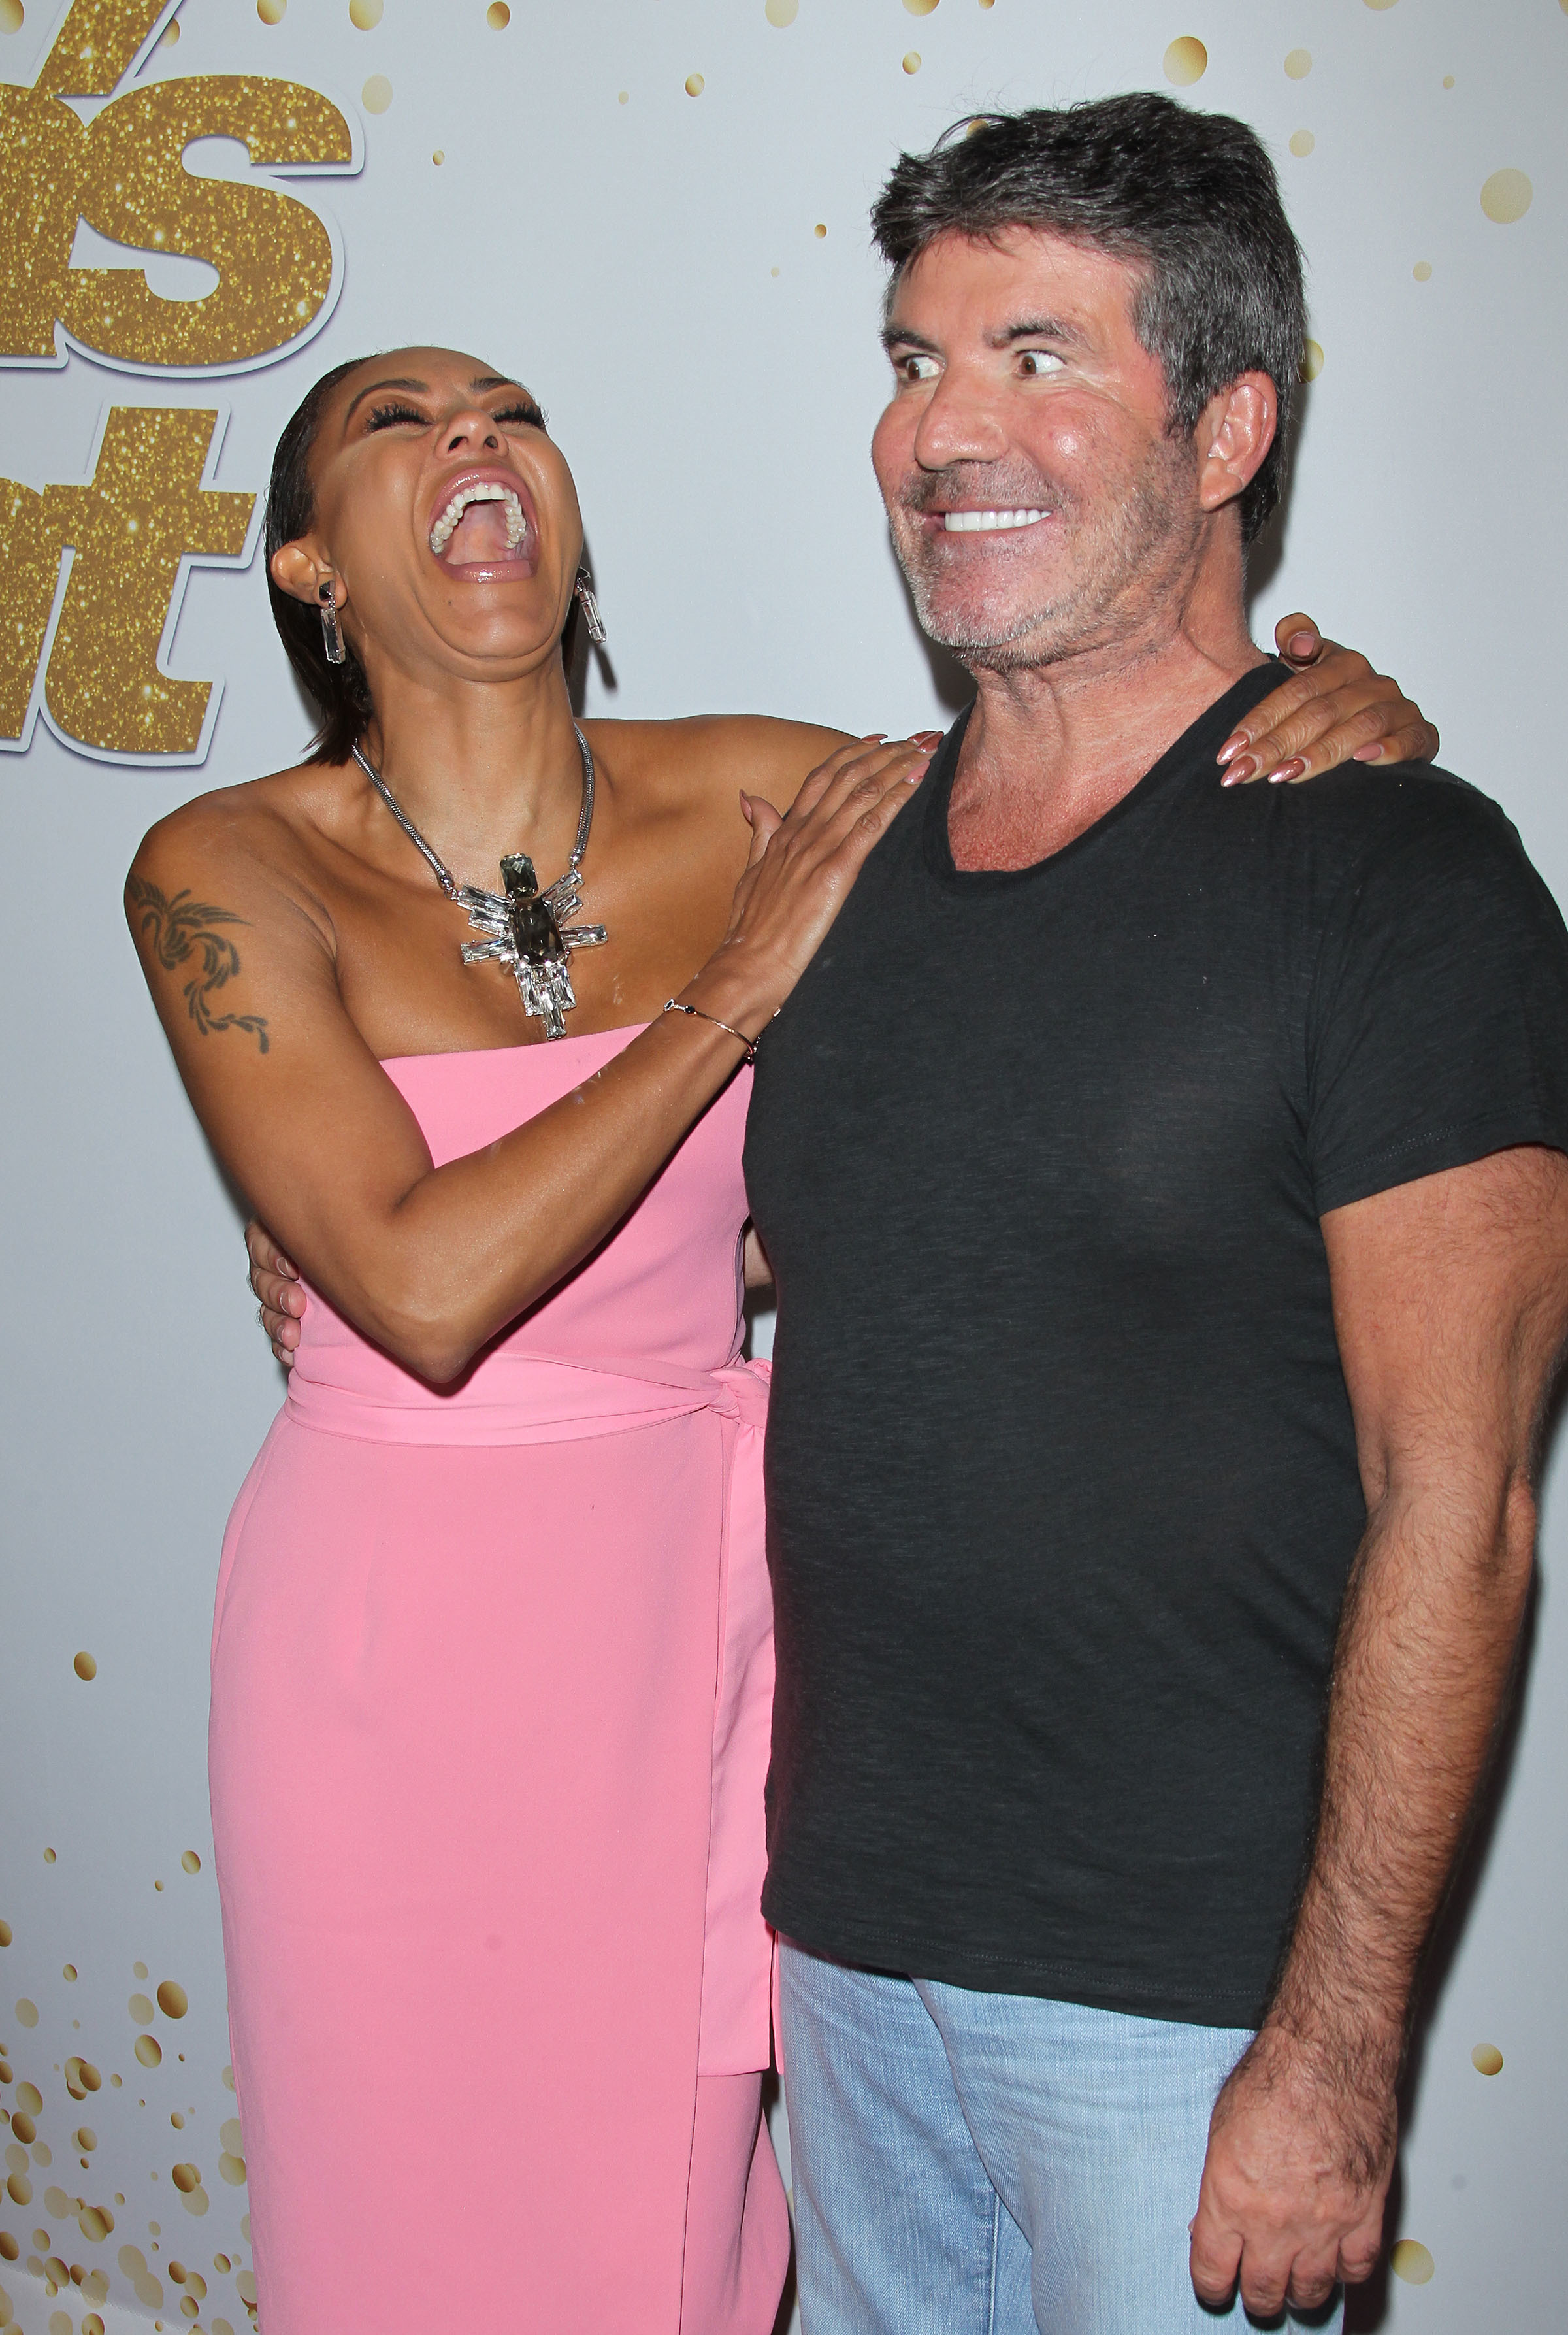 Mel B and Simon Cowell attend the America's Got Talent Live Show in Los Angeles on Sept. 11, 2018.